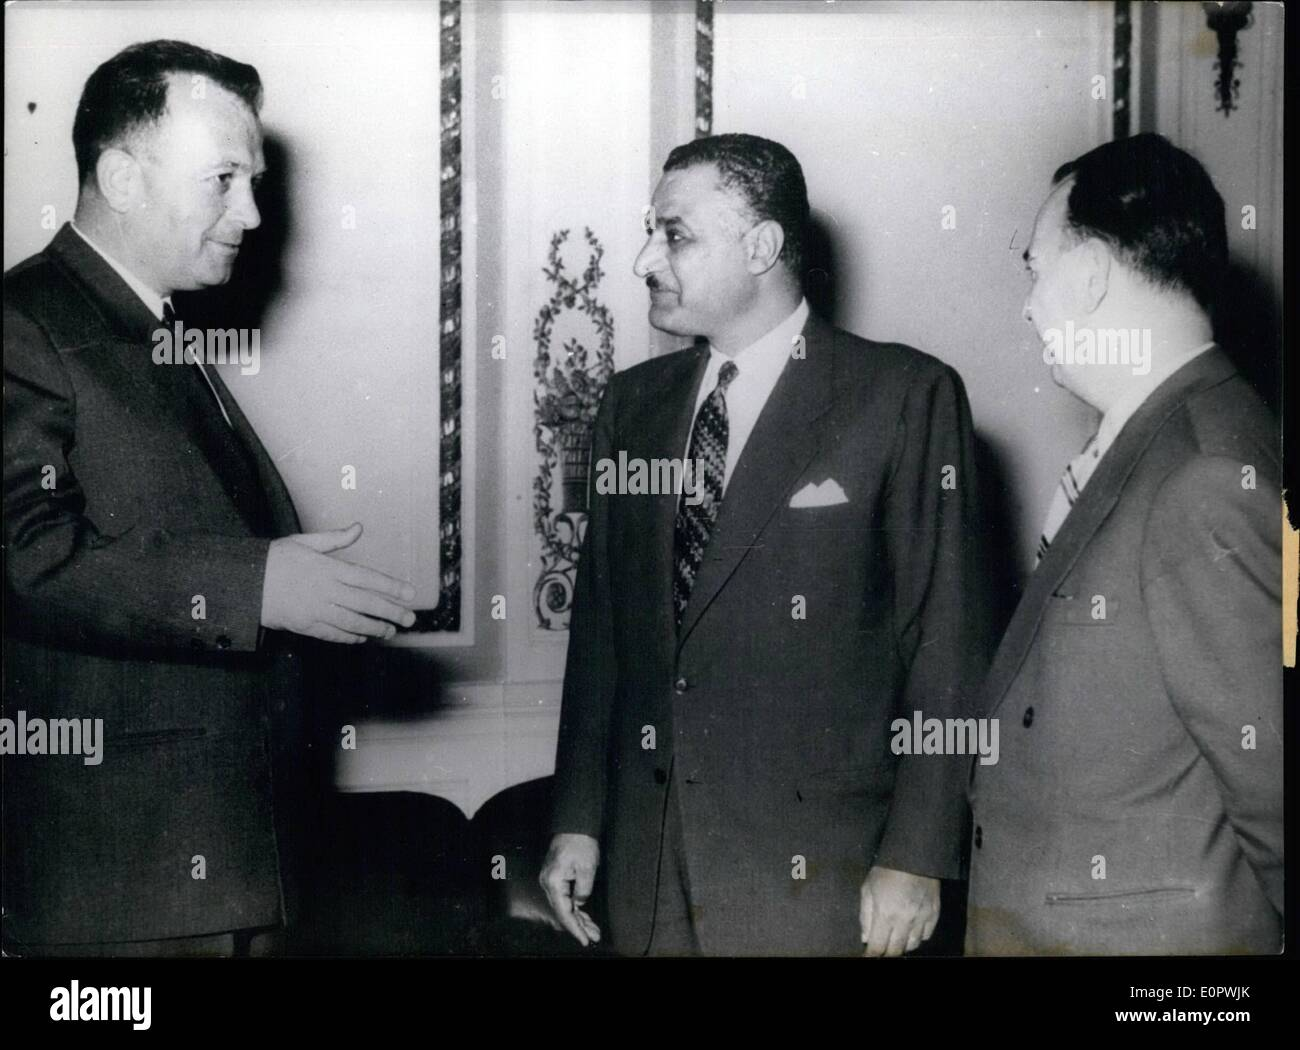 Mar. 03, 1957 - Vice-president of Yugoslavia pays a visit to Nasser. Egypt's President Gamal Abdel Nasser received - Stock Image